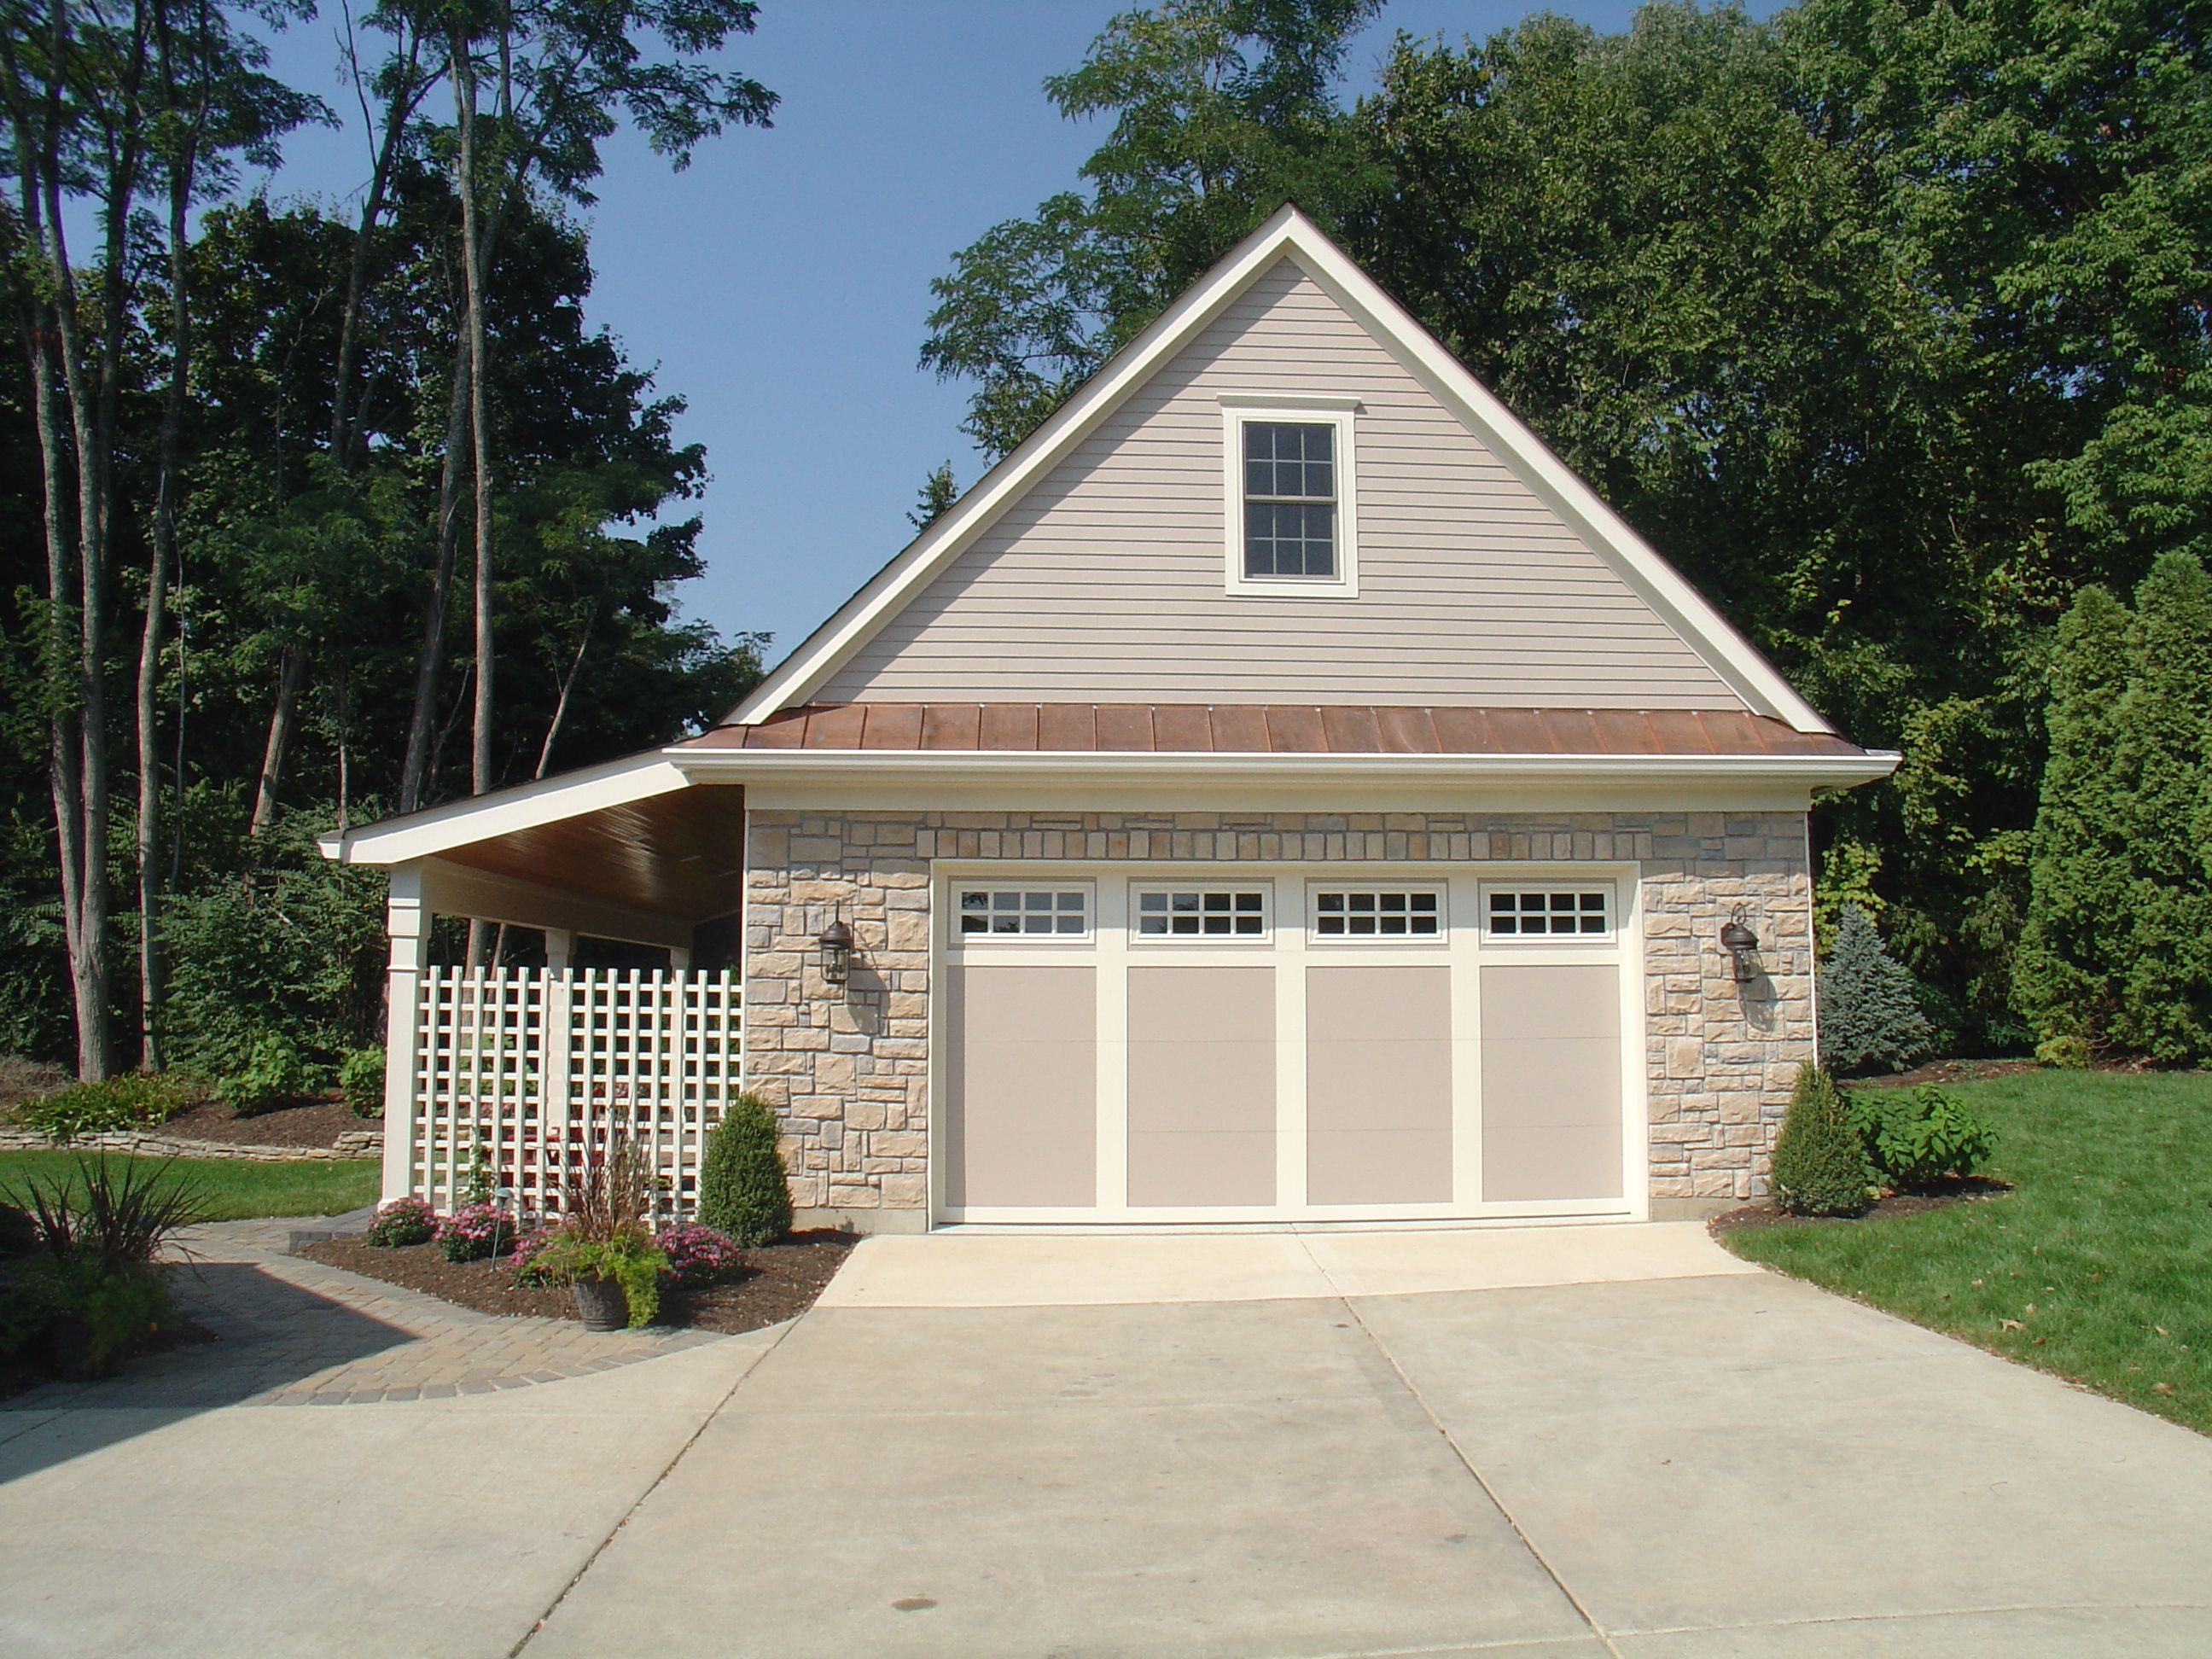 Another version of a detached garage with porch to the for Garage styles pictures